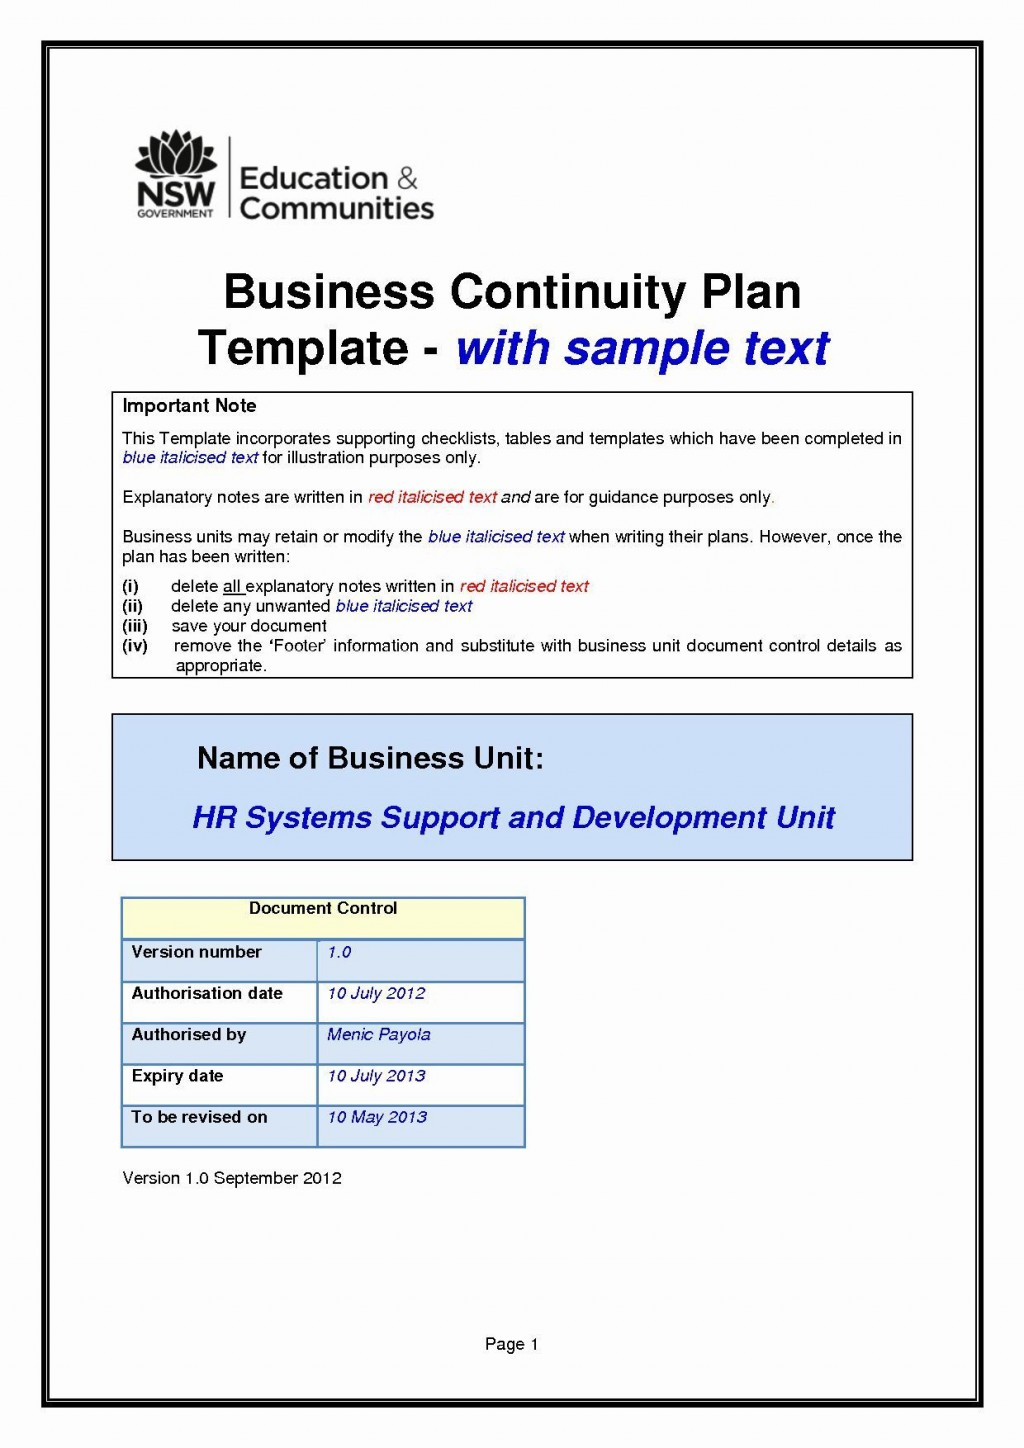 001 Unforgettable Simple Busines Continuity Plan Template Photo  Australia Sample For Small Businesse Basic ExampleLarge